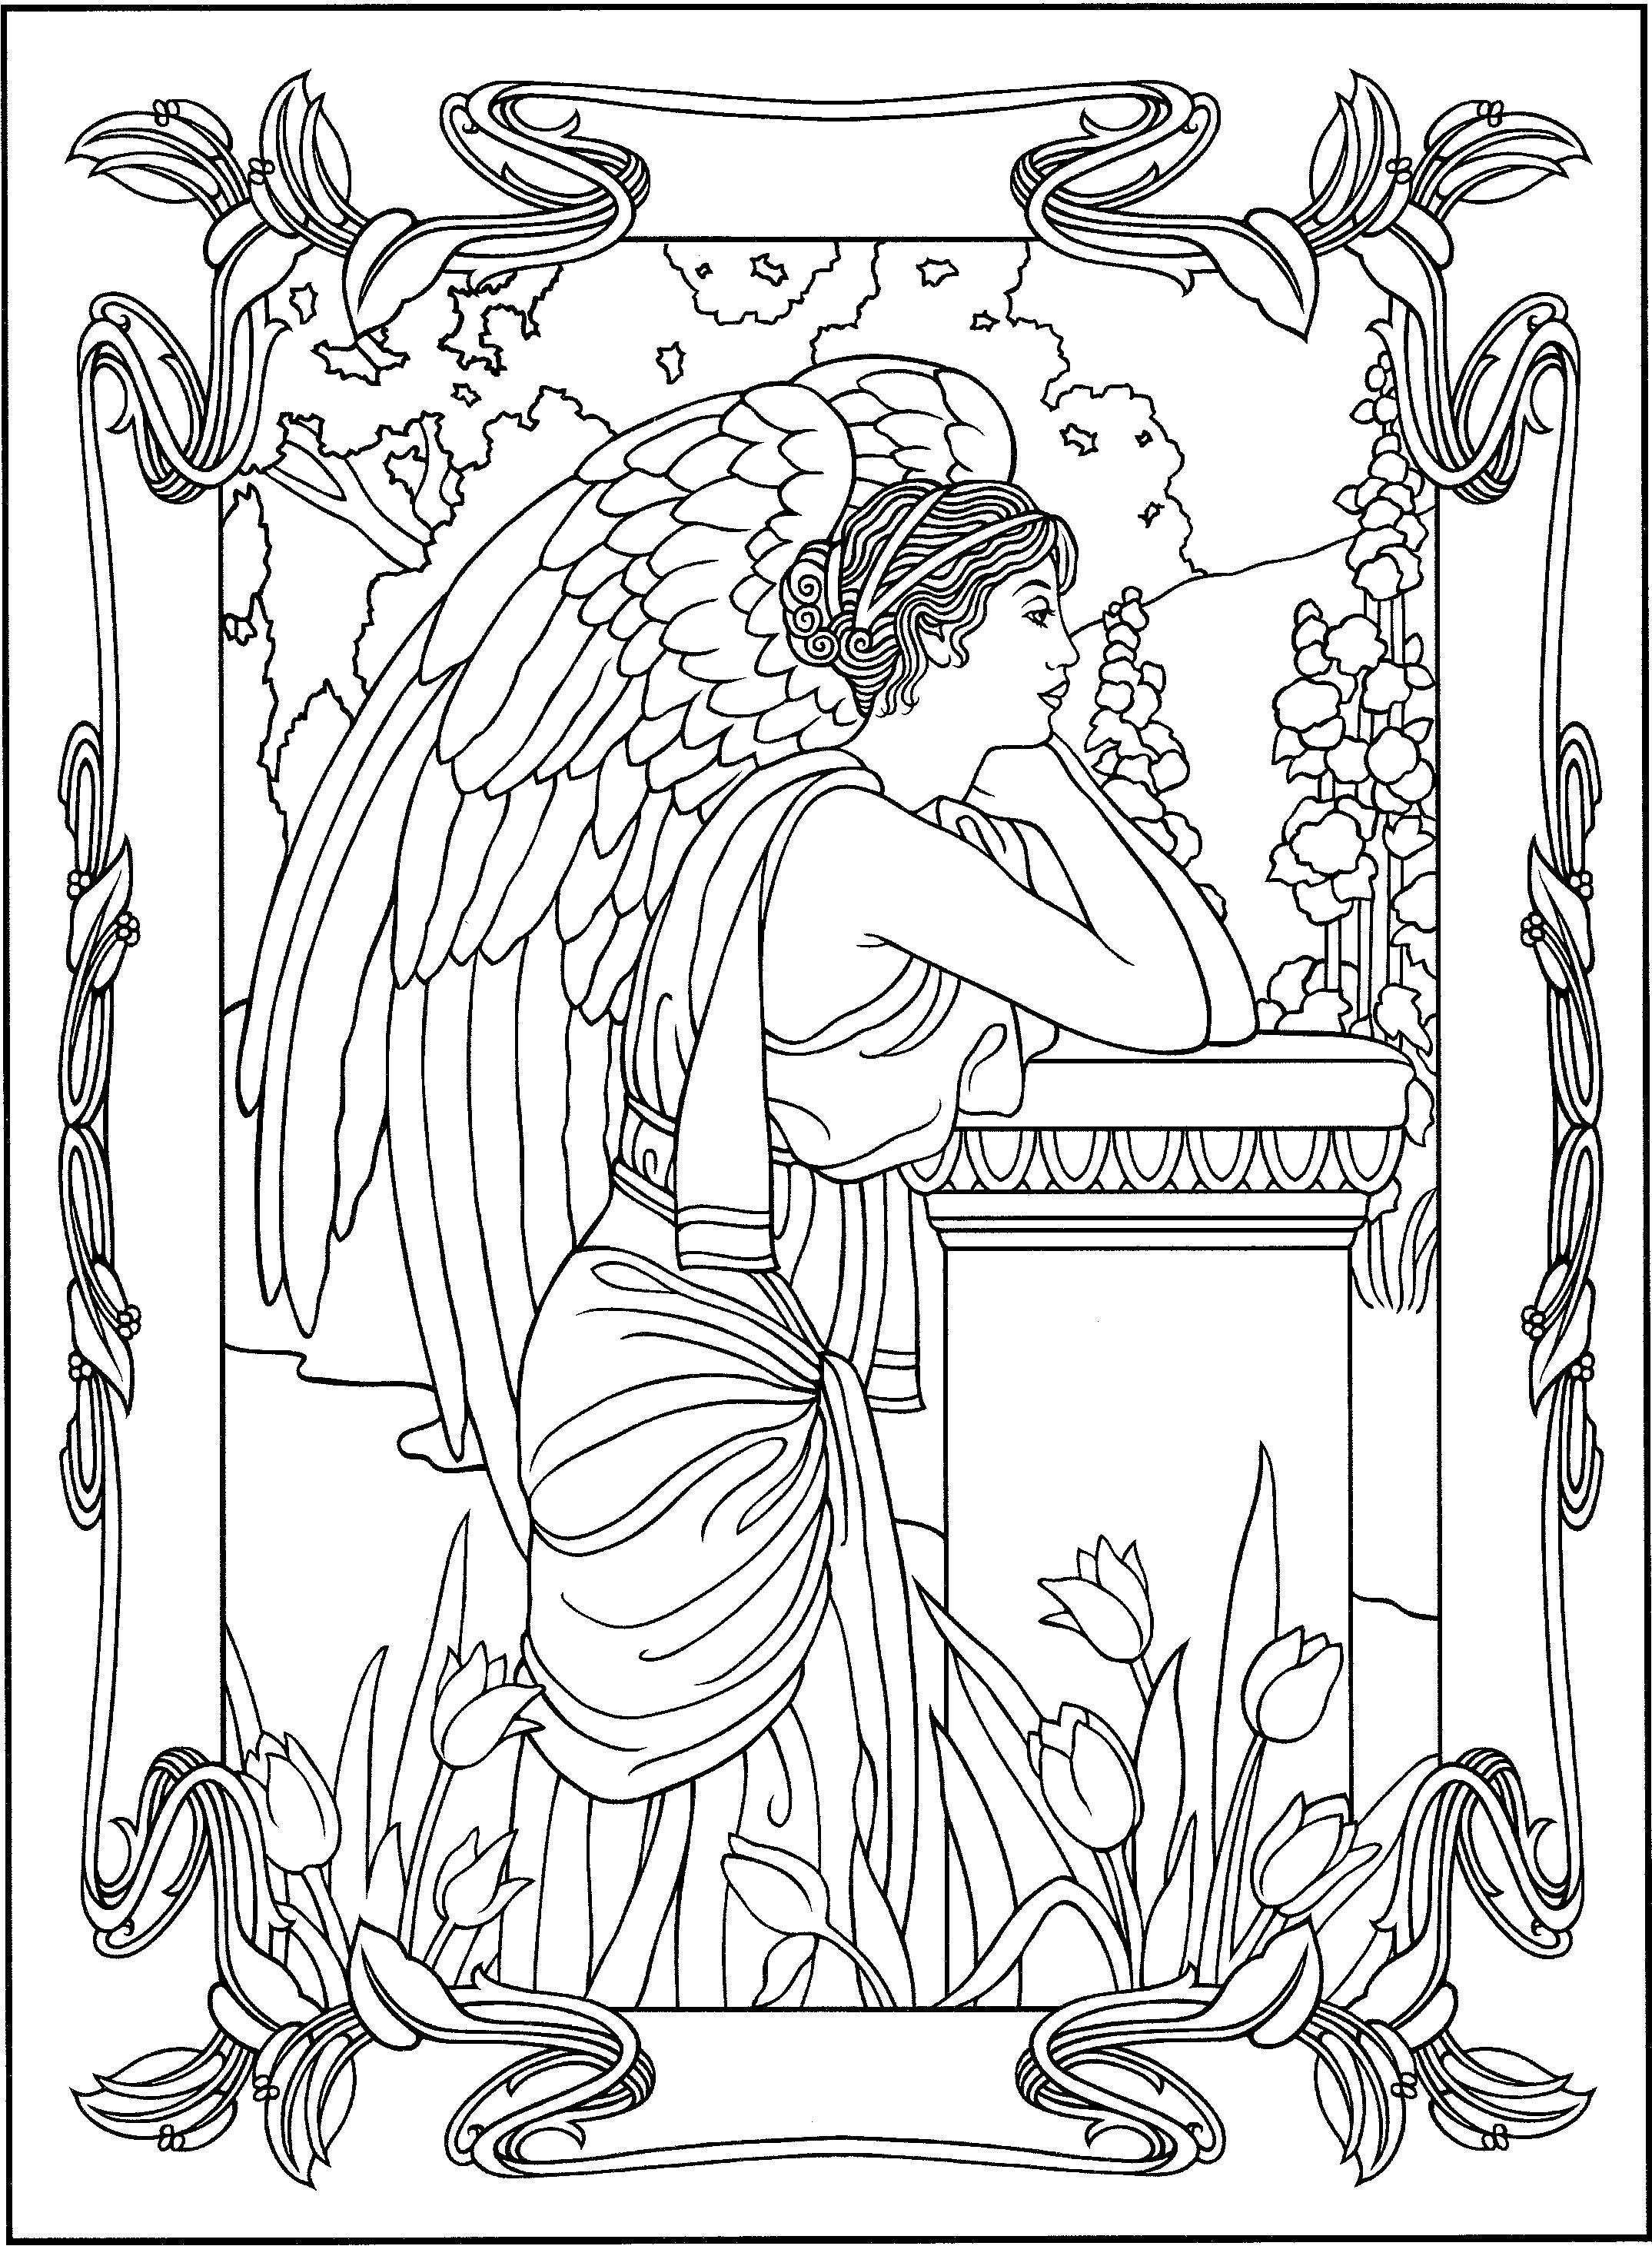 Angel coloring page angels coloring pages for adults for Angel coloring pages